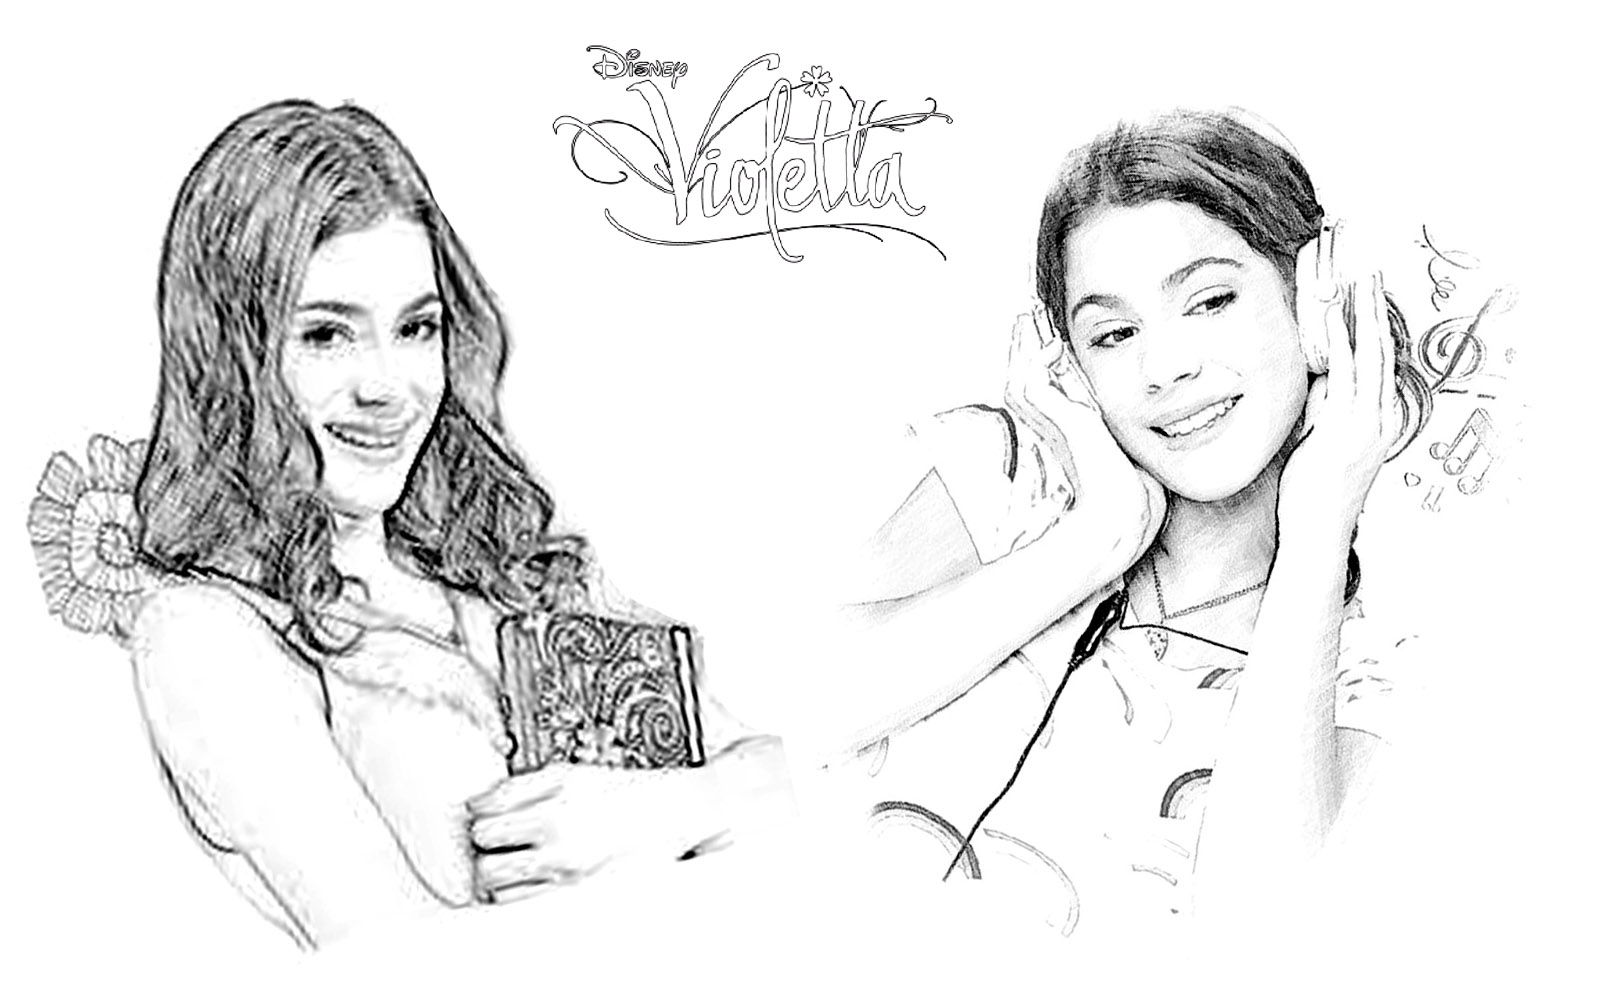 Printable coloring pages violetta - Colouring Pages Violetta Desenhos Para Colorir Da Violetta Educa O